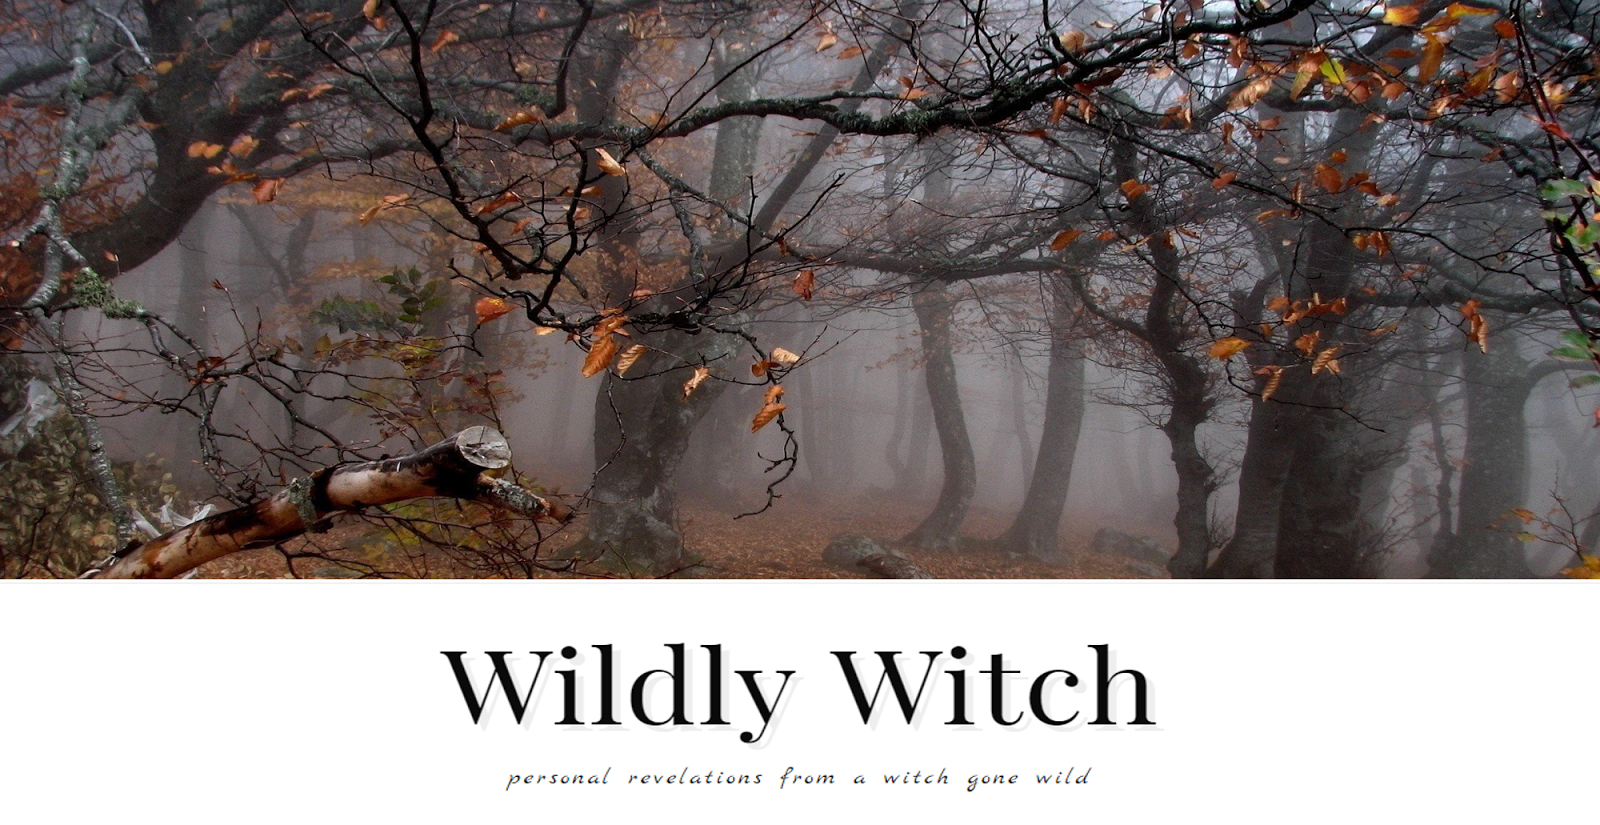 Wildly Witch